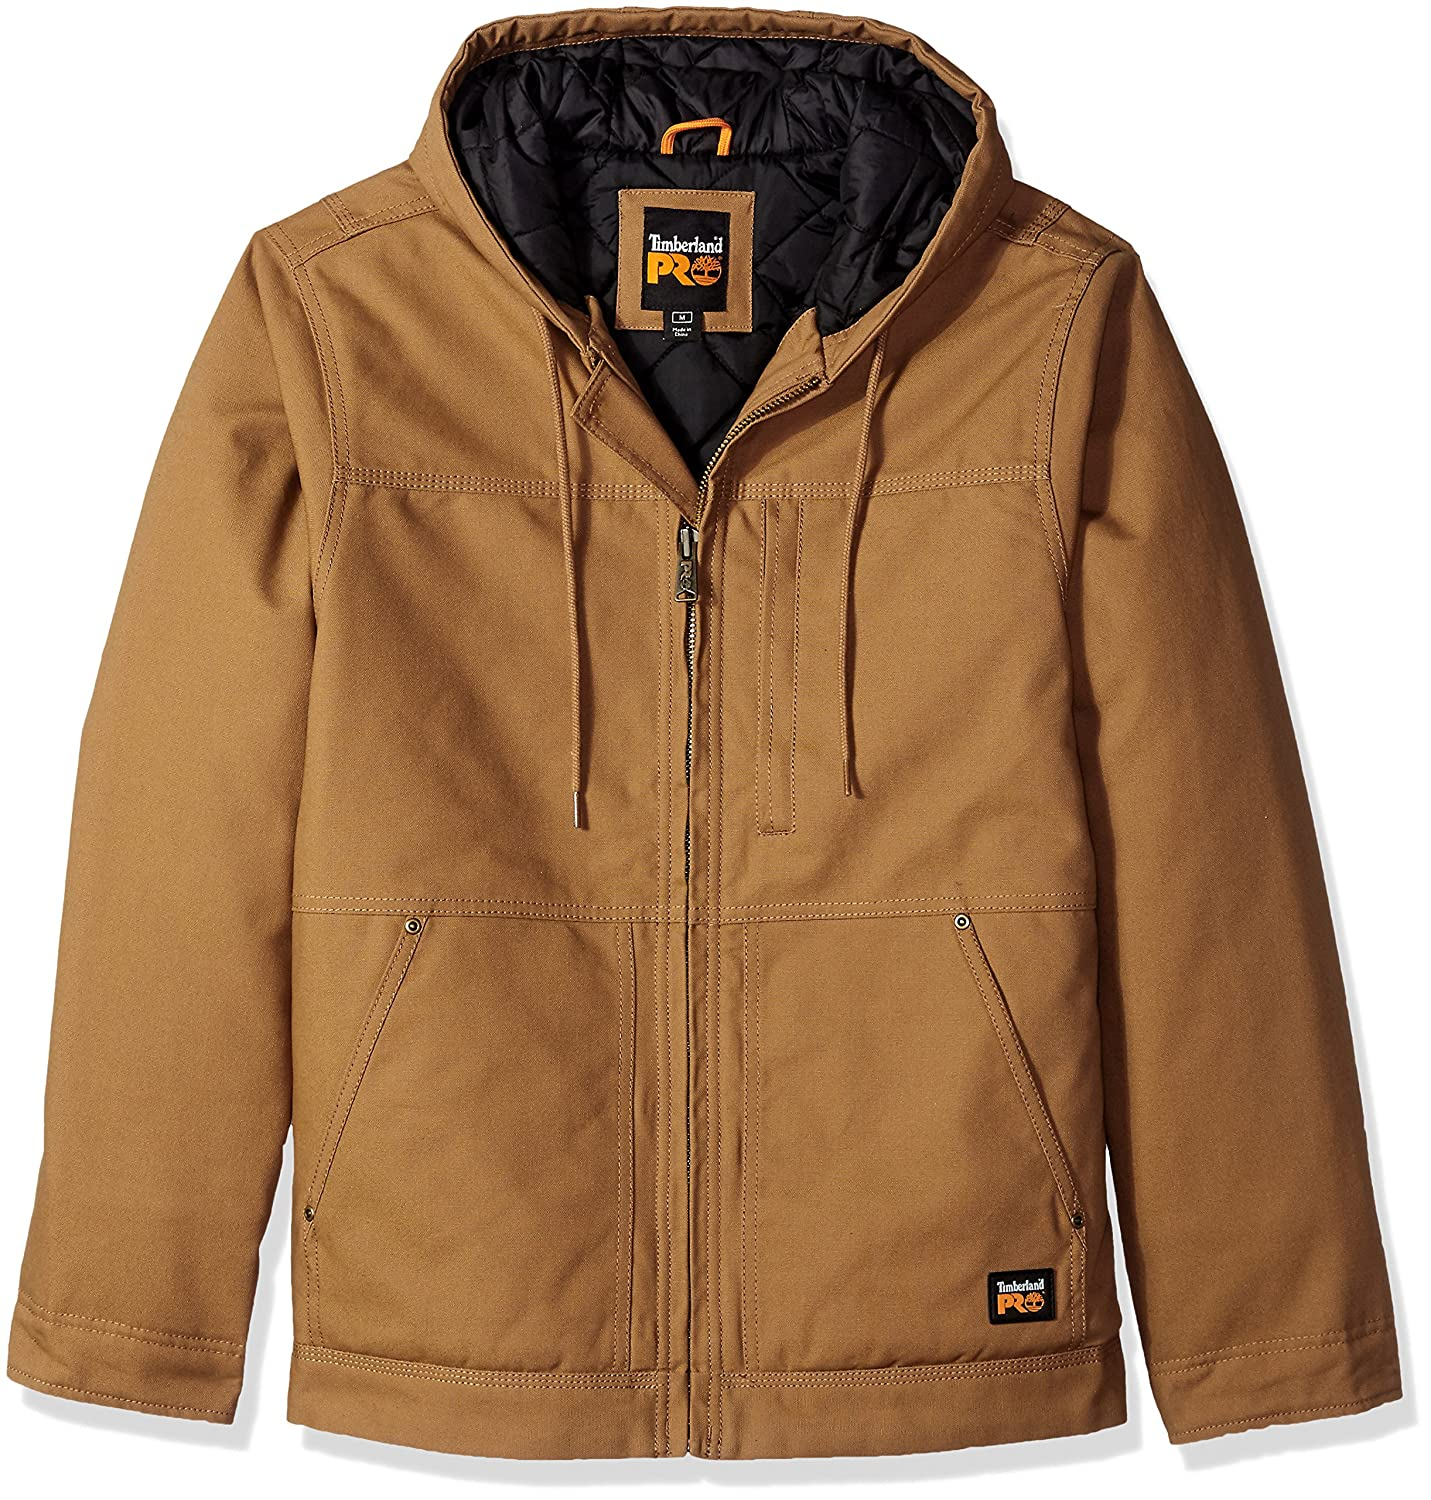 Timberland PRO OUTERWEAR メンズ B01N5LYA0J S|Dark Wheat Dark Wheat S